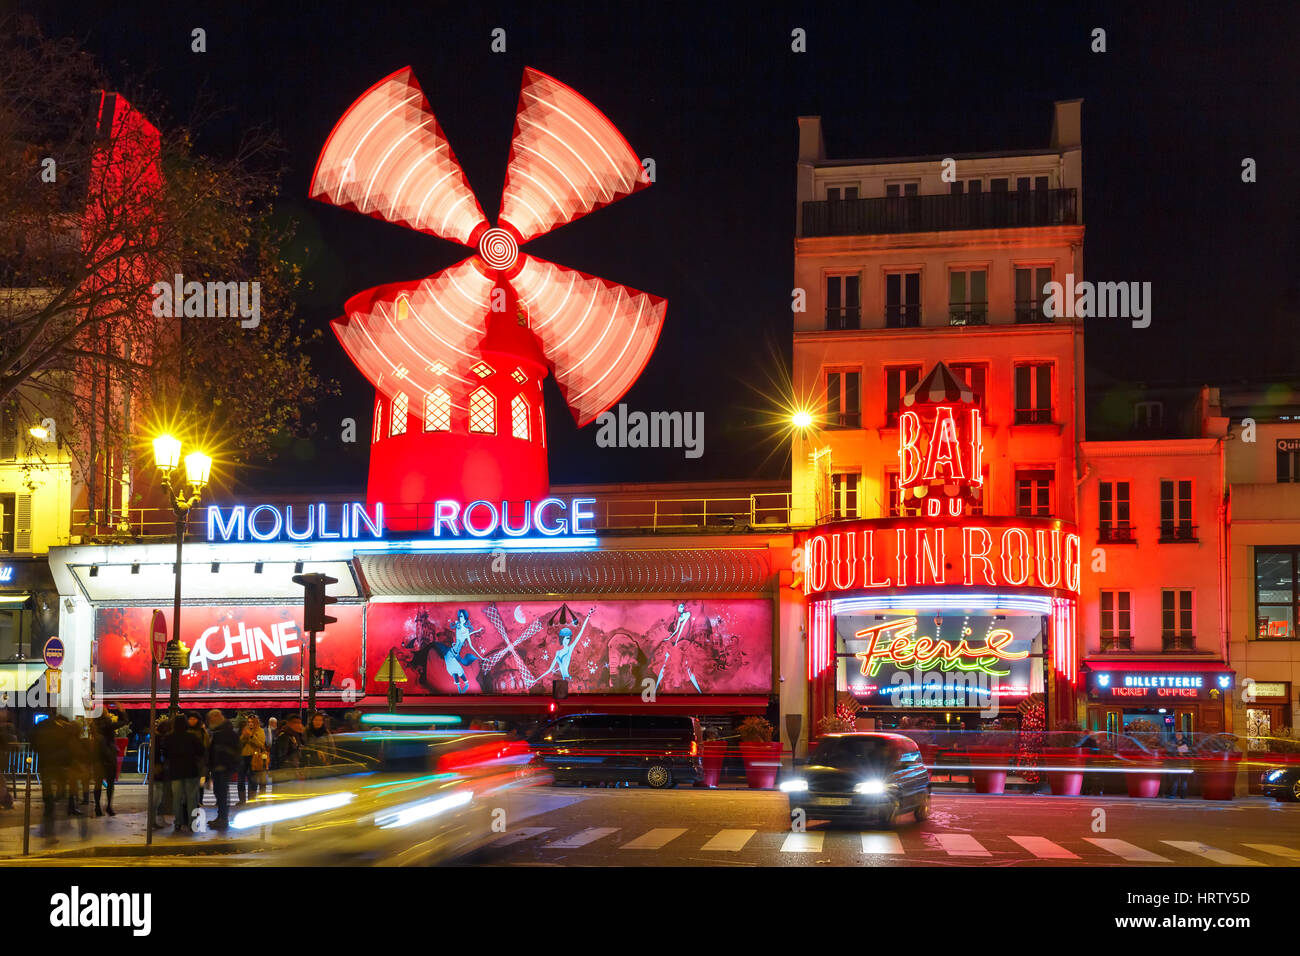 Paris, France - December 28, 2016: The picturesque famous cabaret Moulin Rouge located close to Montmartre in the - Stock Image